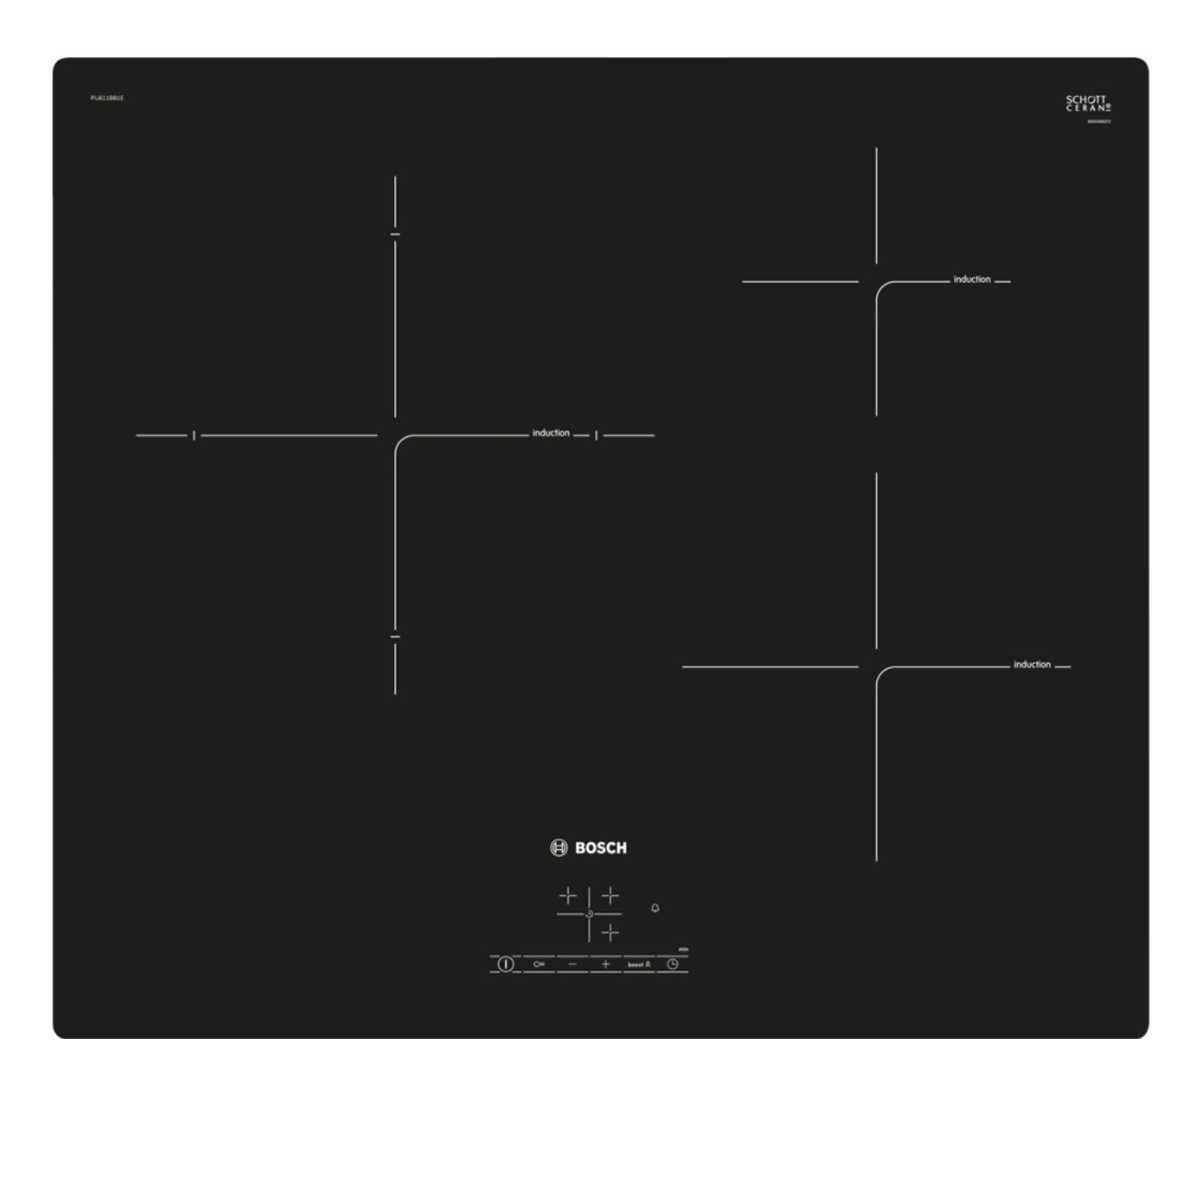 Bosch PIJ611BB1E 60cm Induction Cooktop